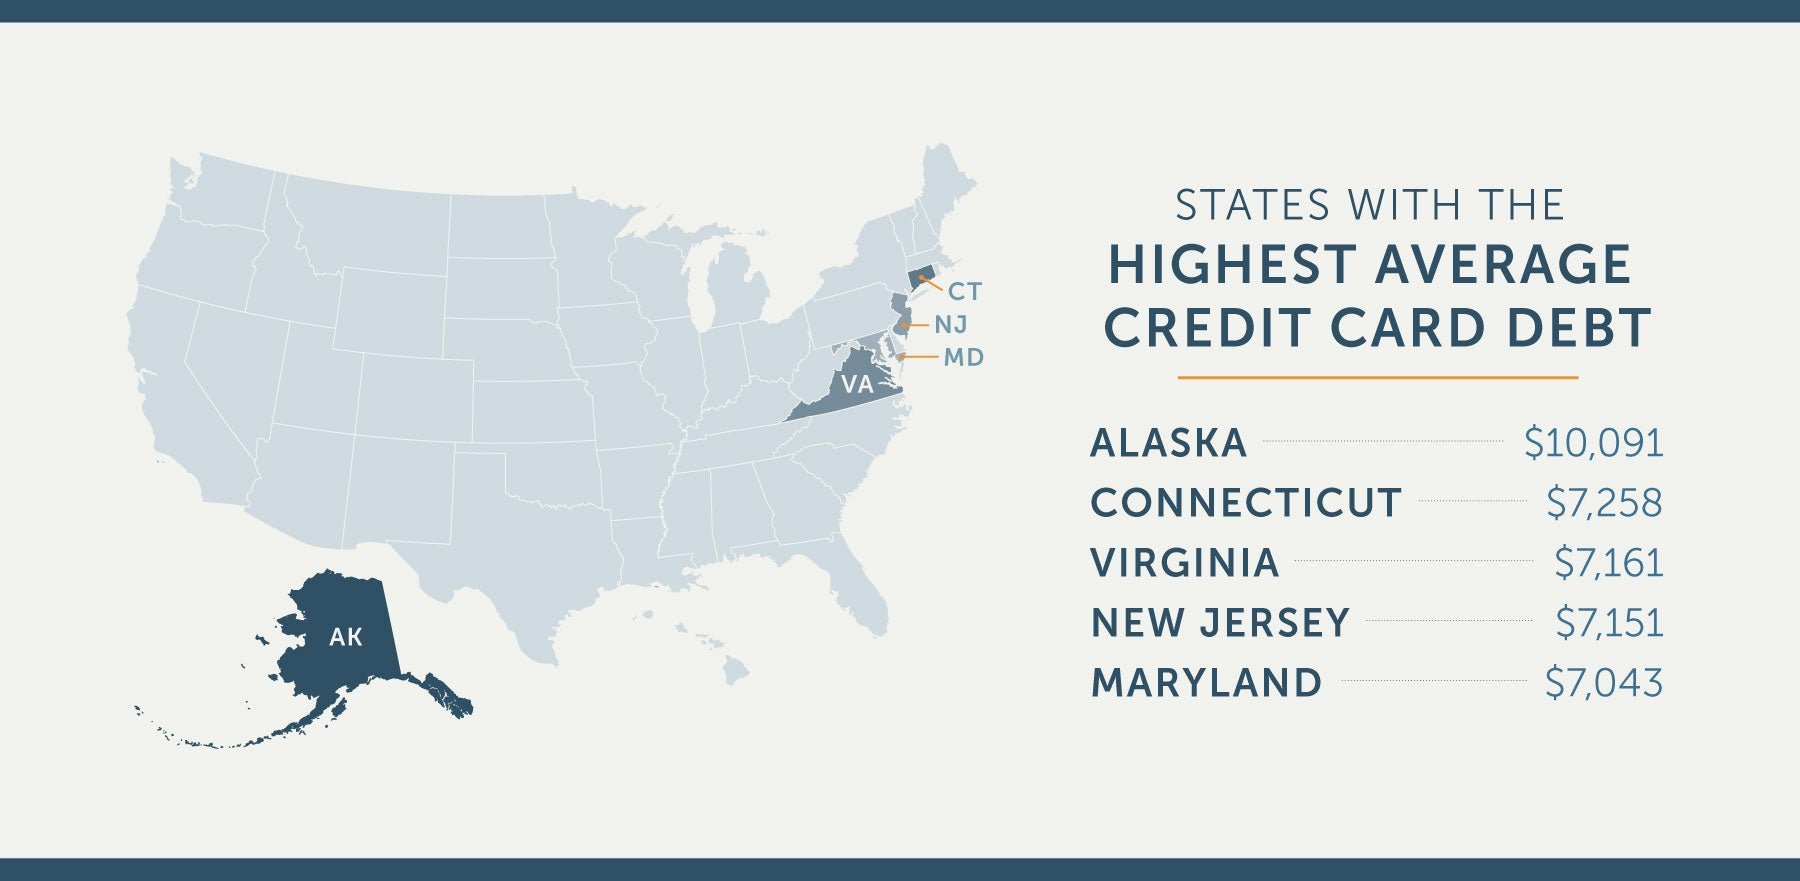 states with highest average credit card debt